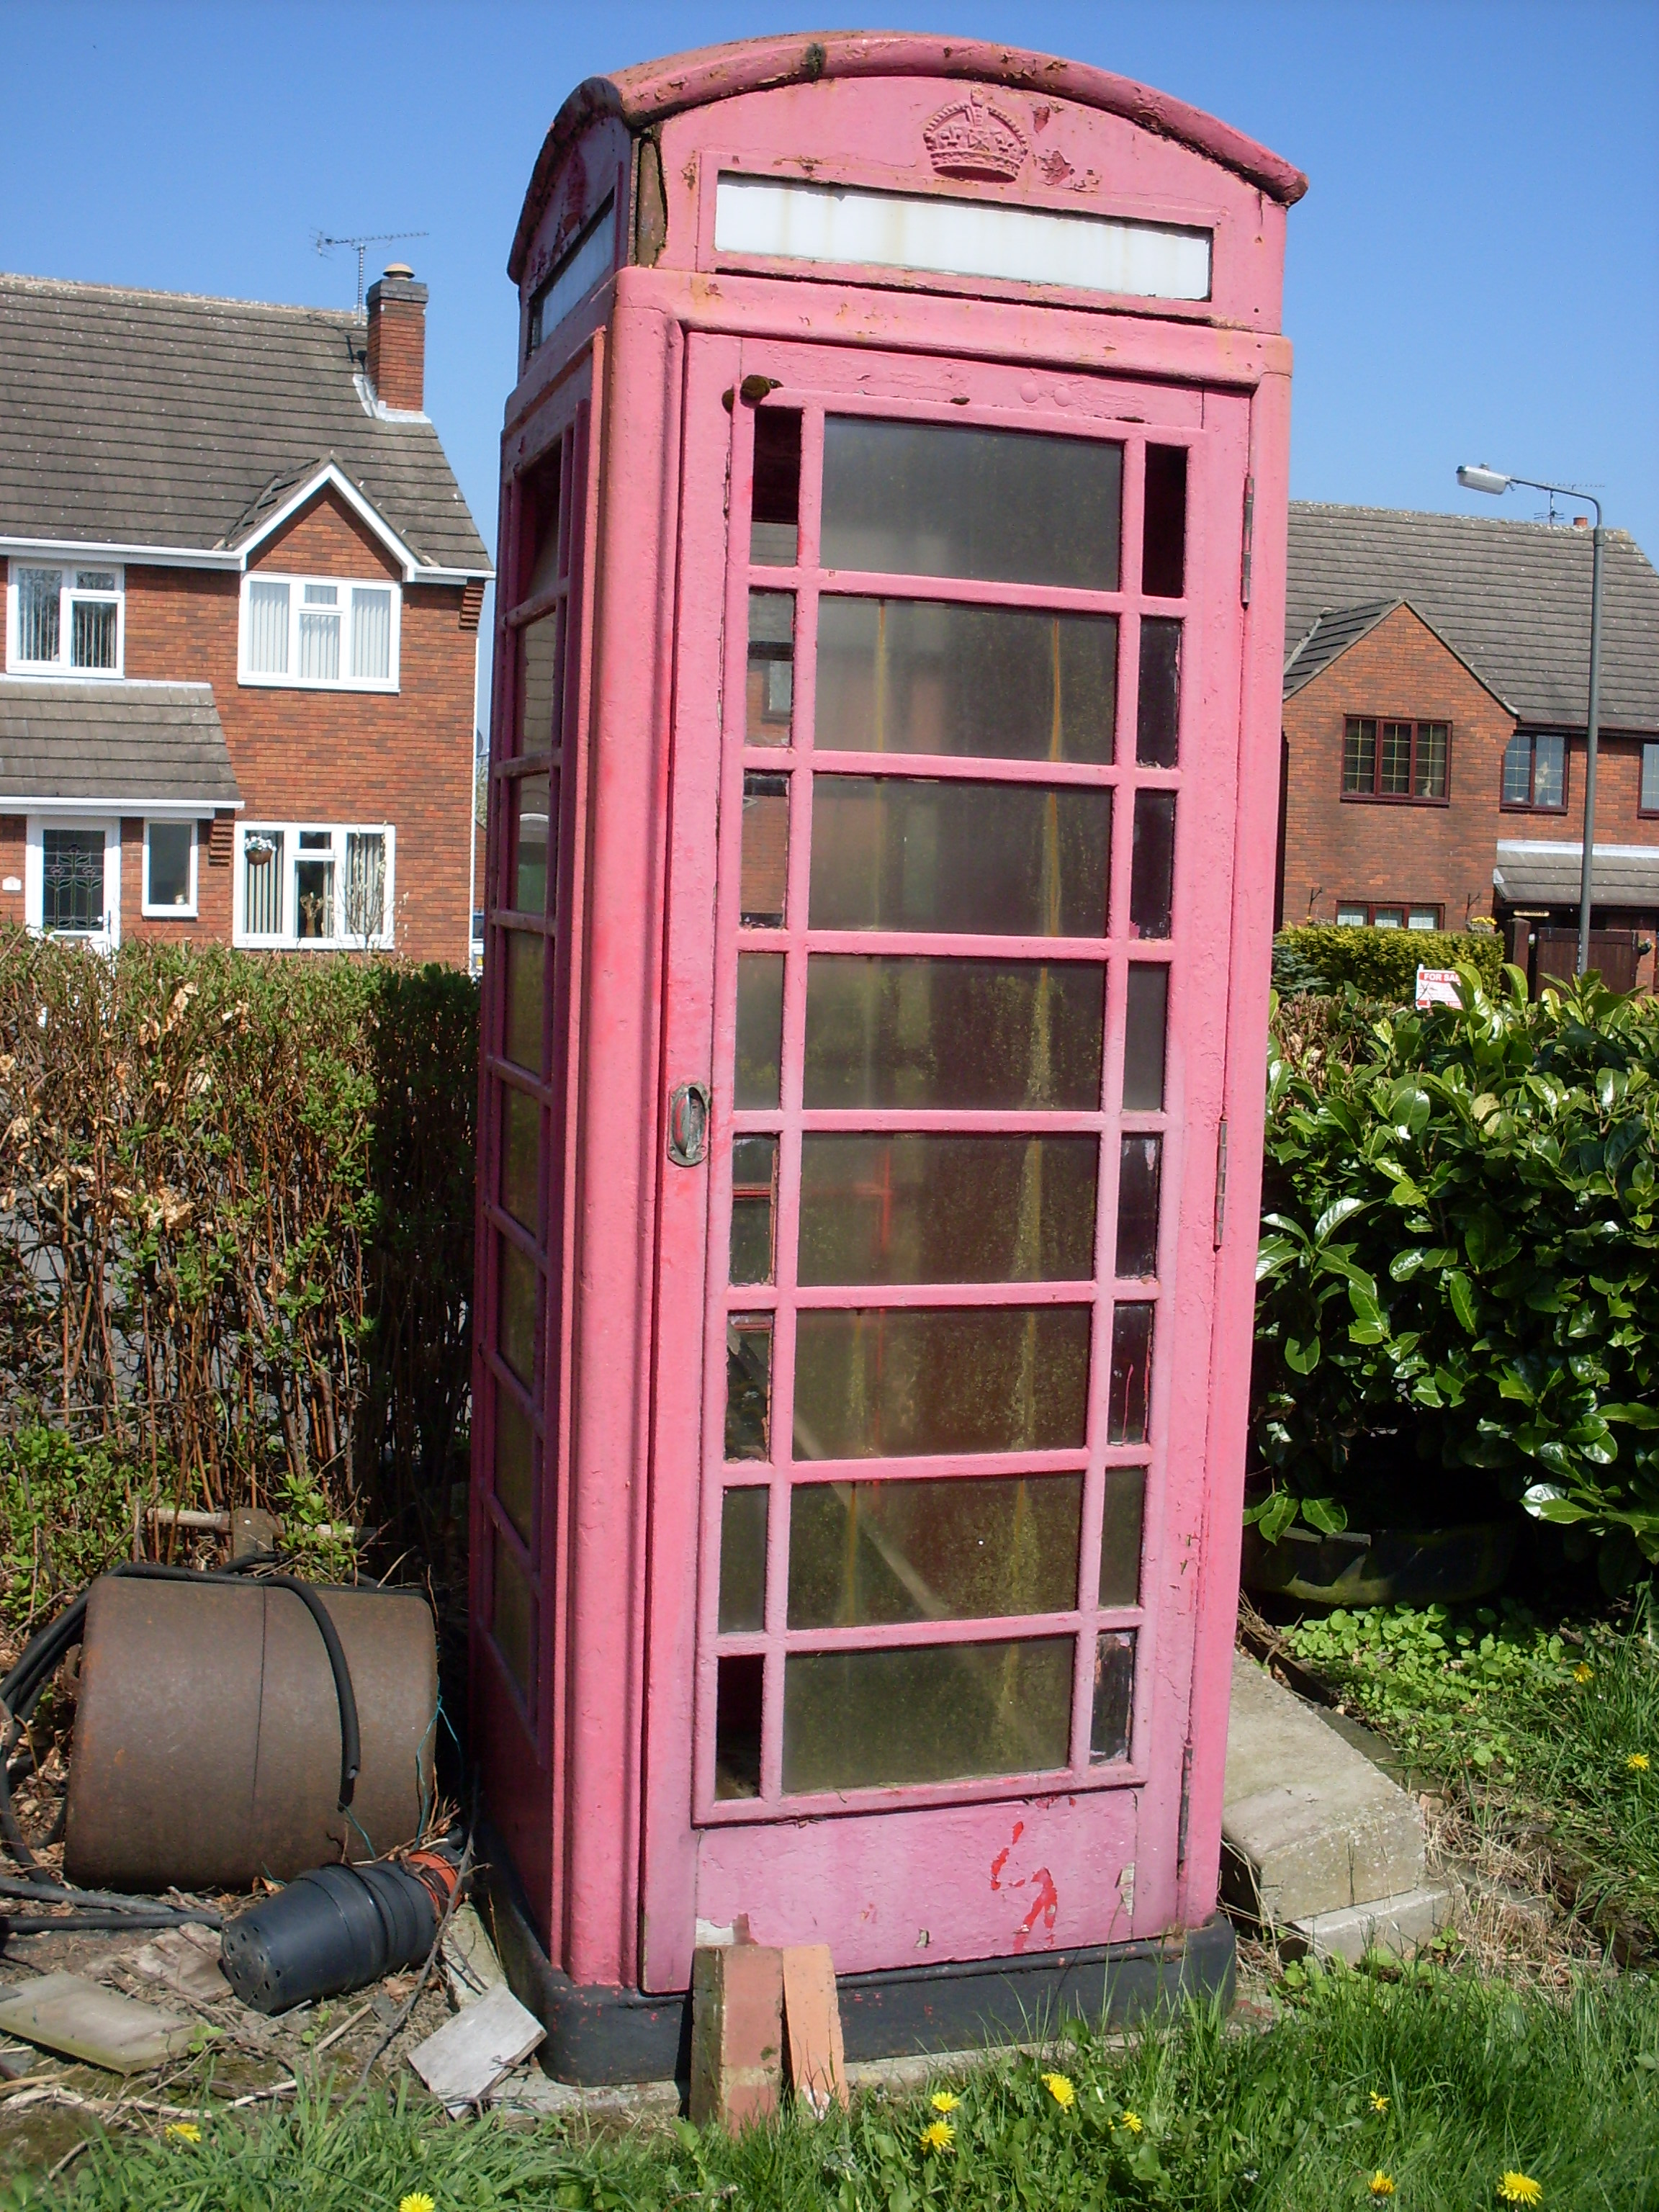 The phone box stood for 25 years in a Derbyshire garden